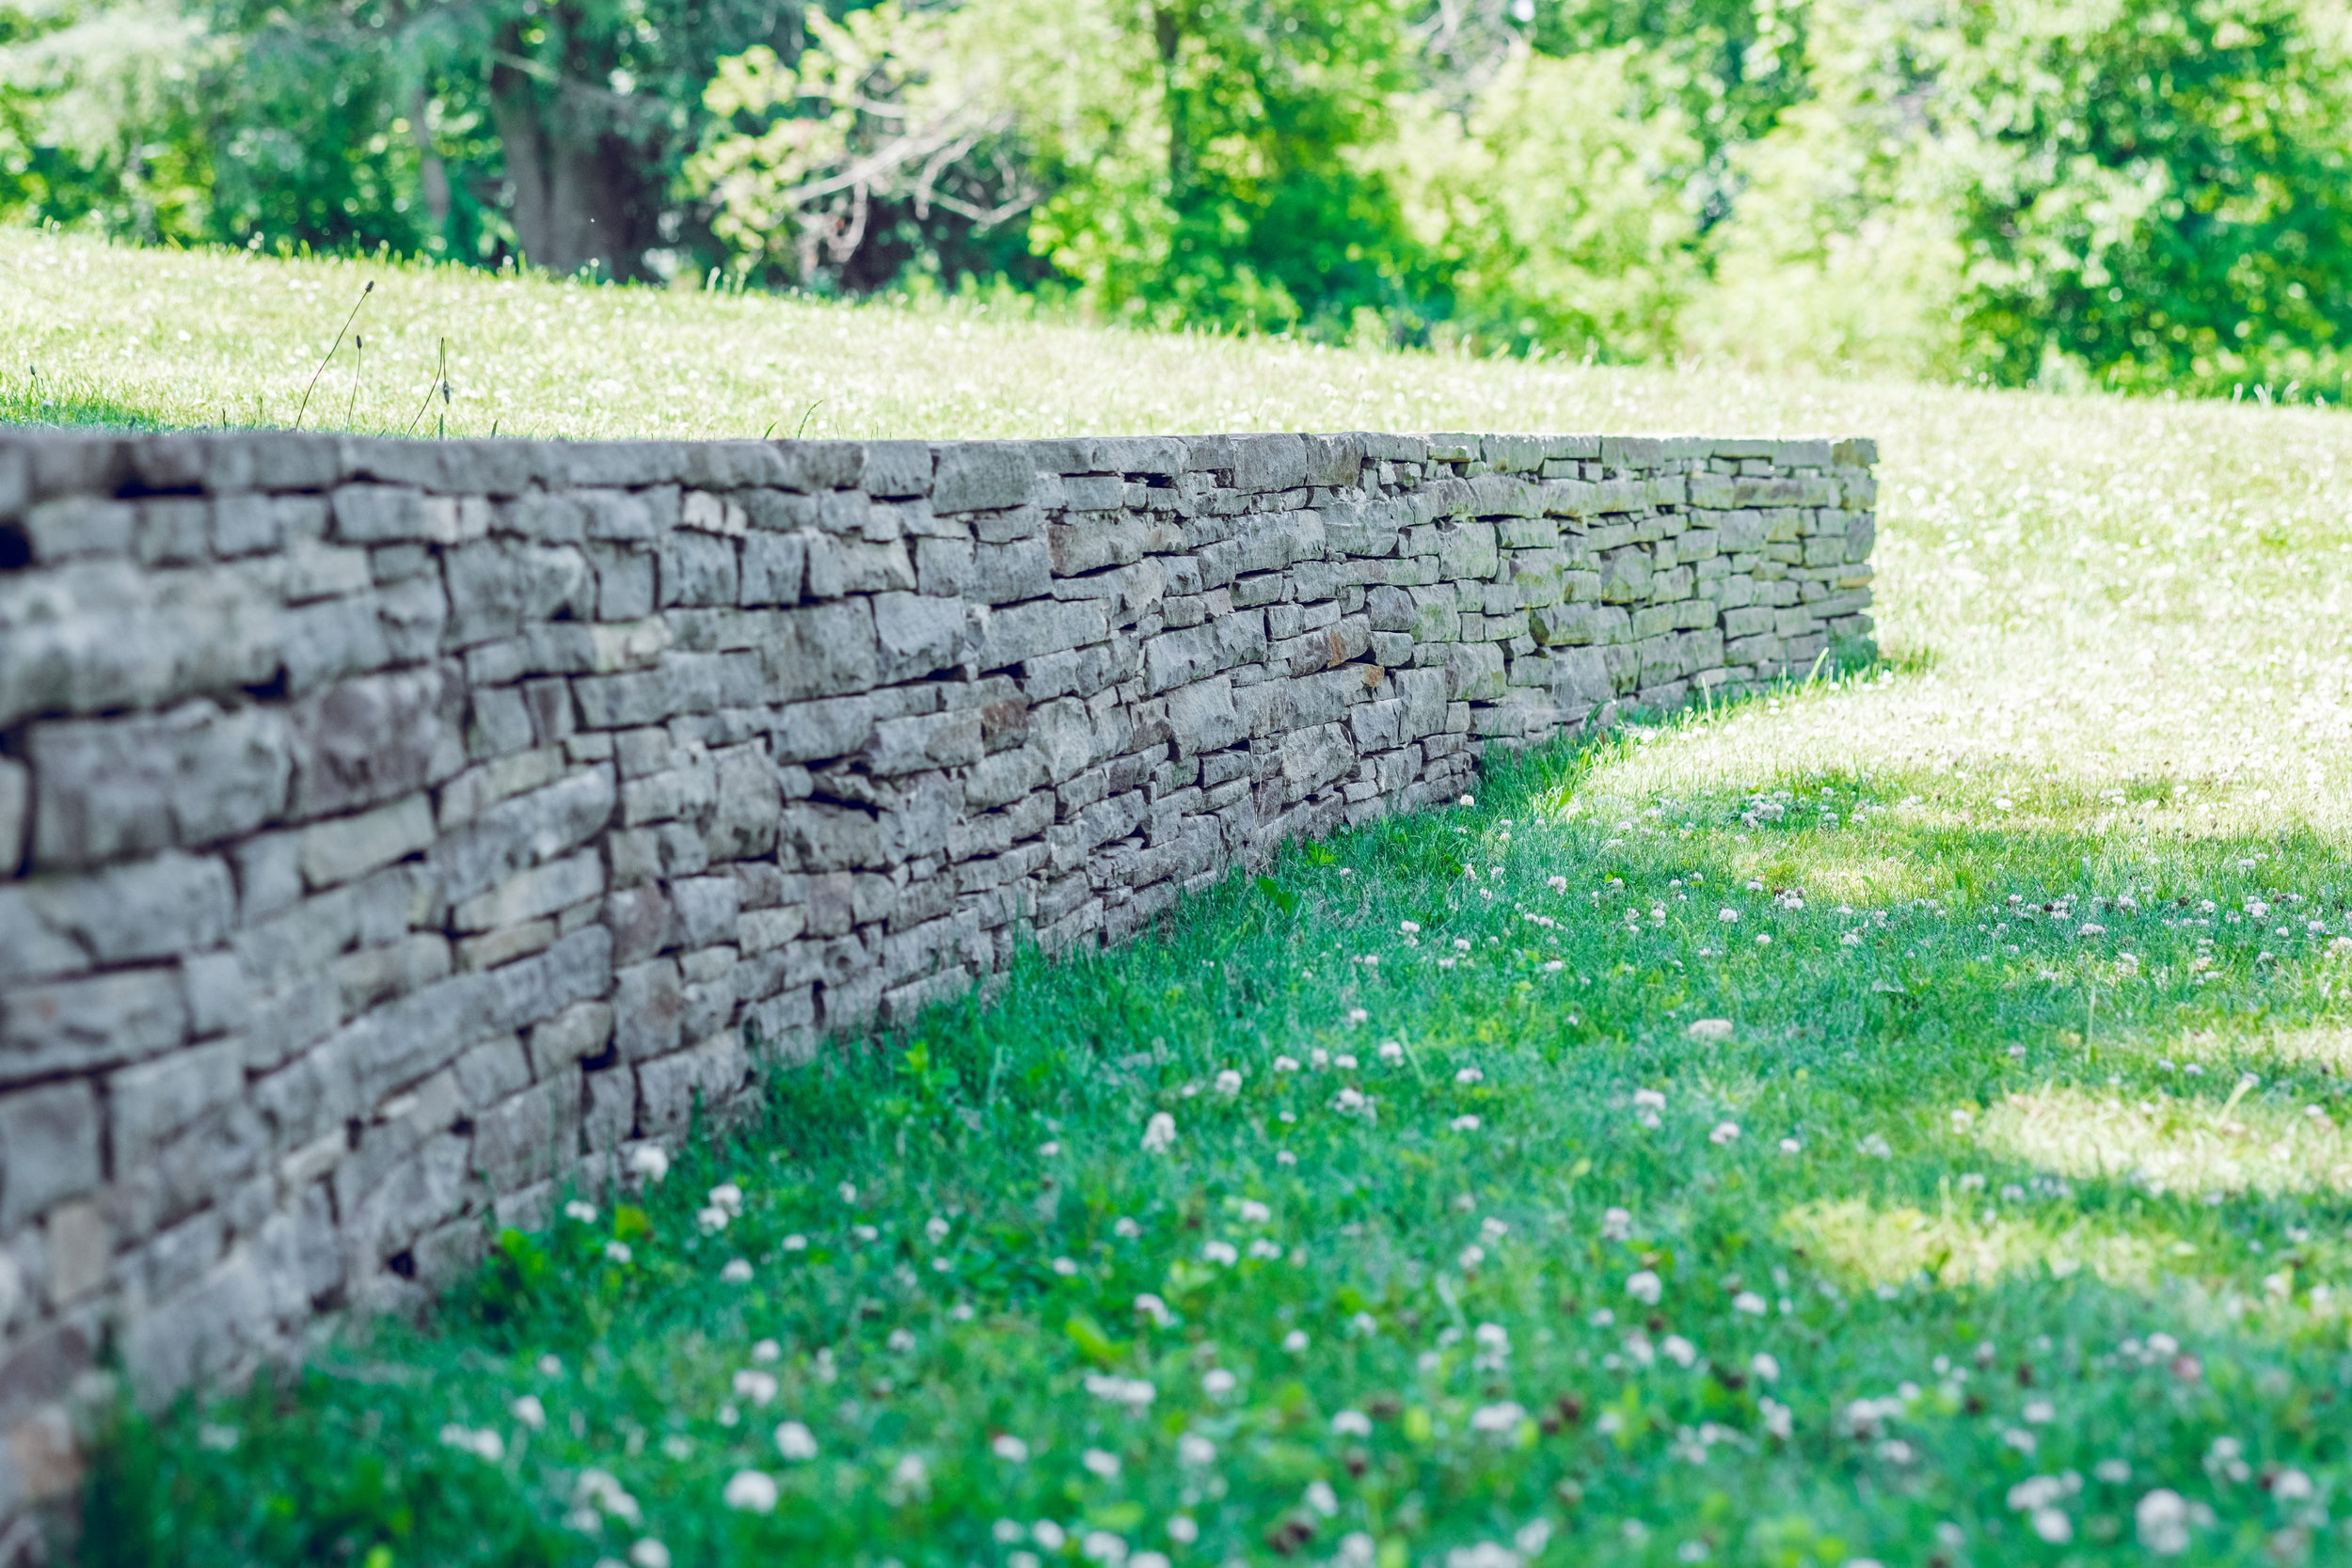 5 Natural Stone Landscaping Ideas for Your Monroe, NY ... on natural birthday ideas, natural business ideas, natural walkway ideas, natural pool ideas, natural greenhouse ideas, natural gardening ideas, natural playroom ideas, natural playground ideas, natural spring ideas, natural bedroom ideas, natural backyard ponds, natural nursery ideas, natural cleaning ideas, natural wedding ideas, natural flooring ideas, natural fountain ideas, natural bathroom ideas, natural patio ideas, natural decorating ideas, natural wall ideas,